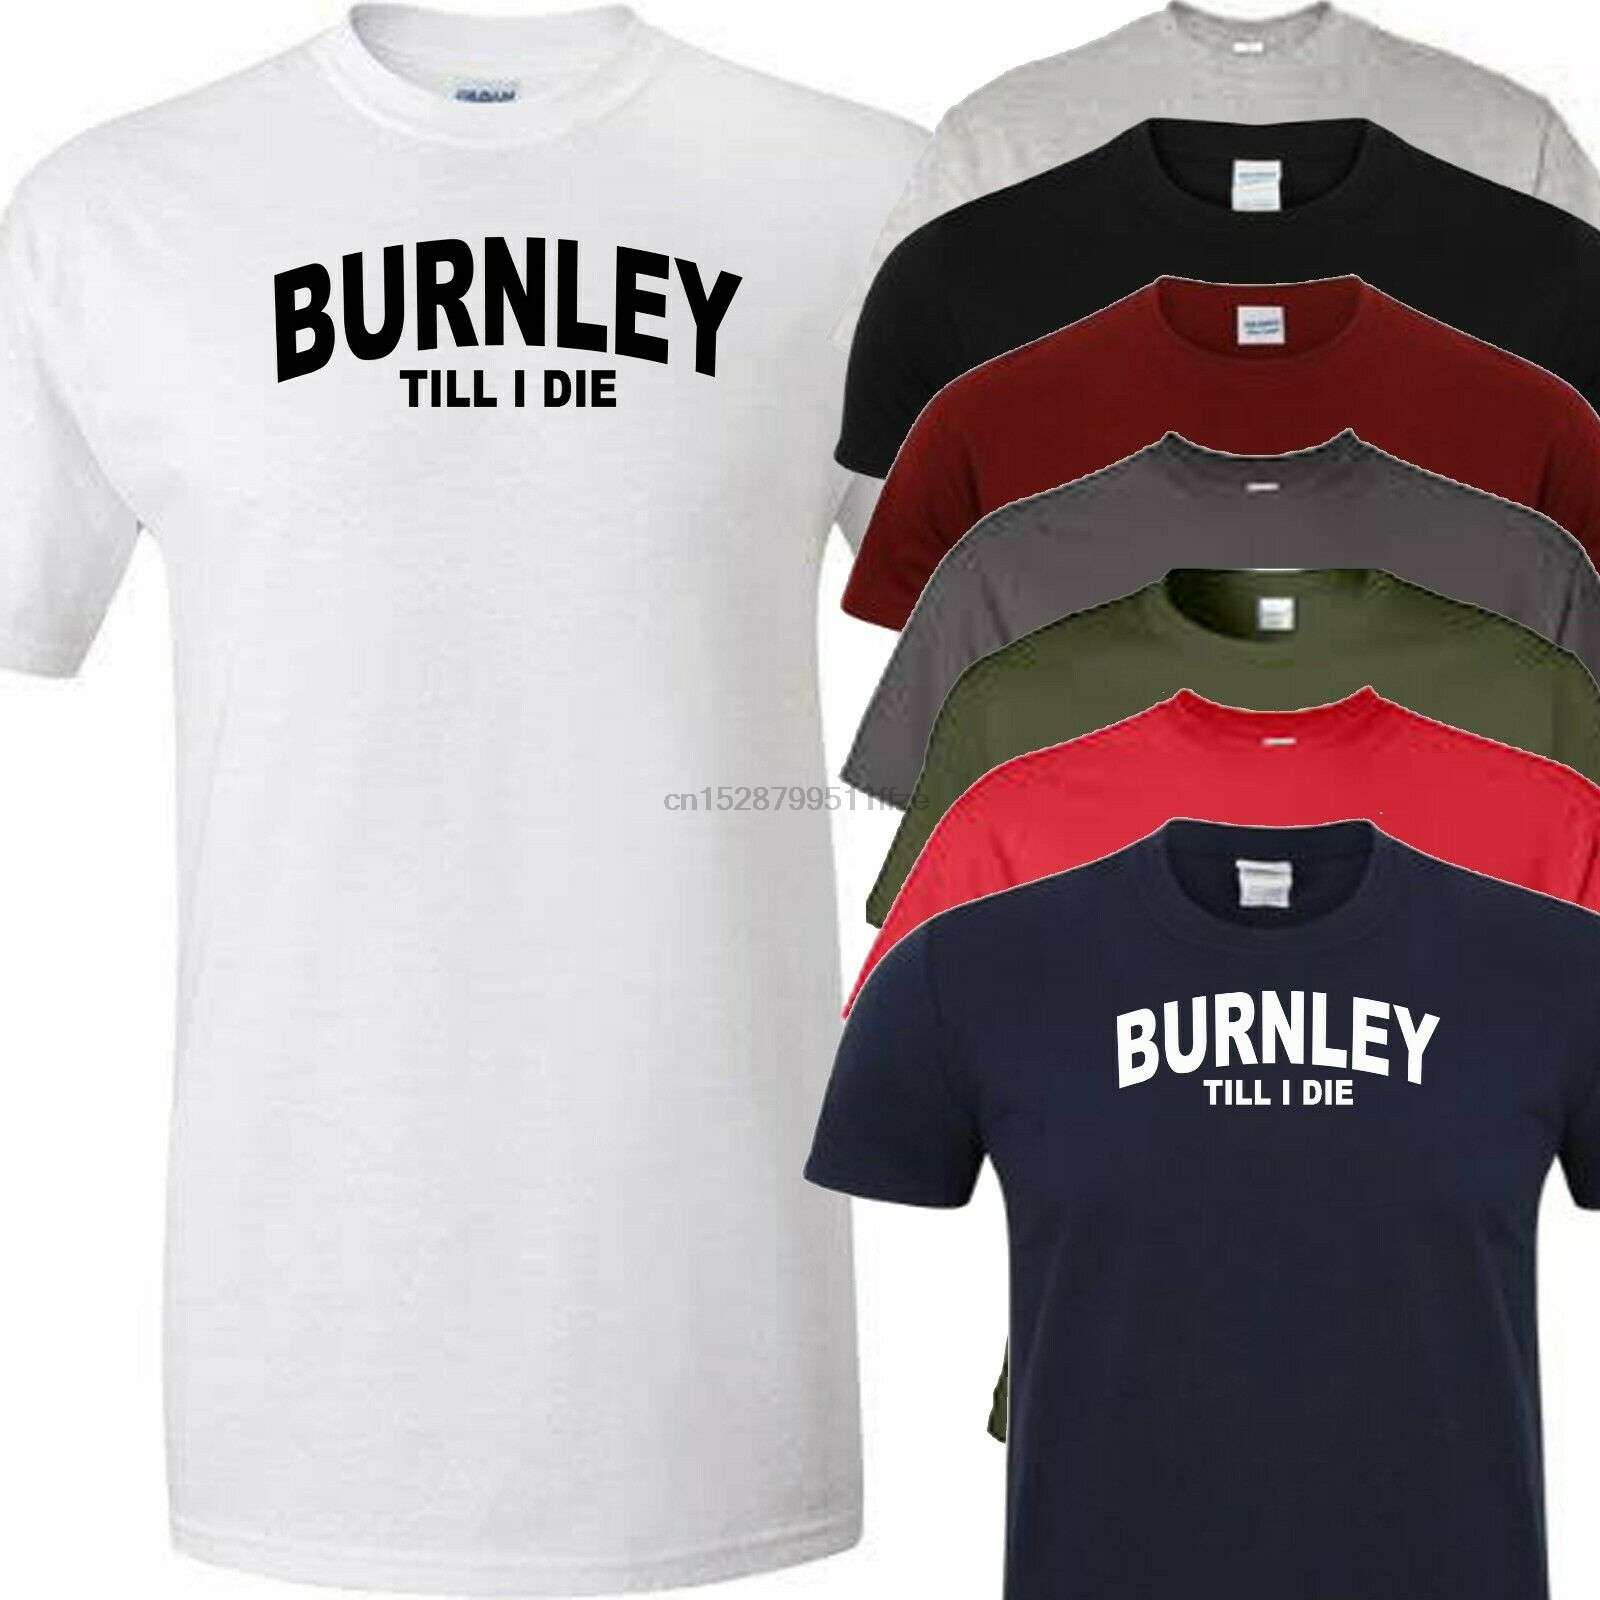 Burnley Till I Die Football T Shirt